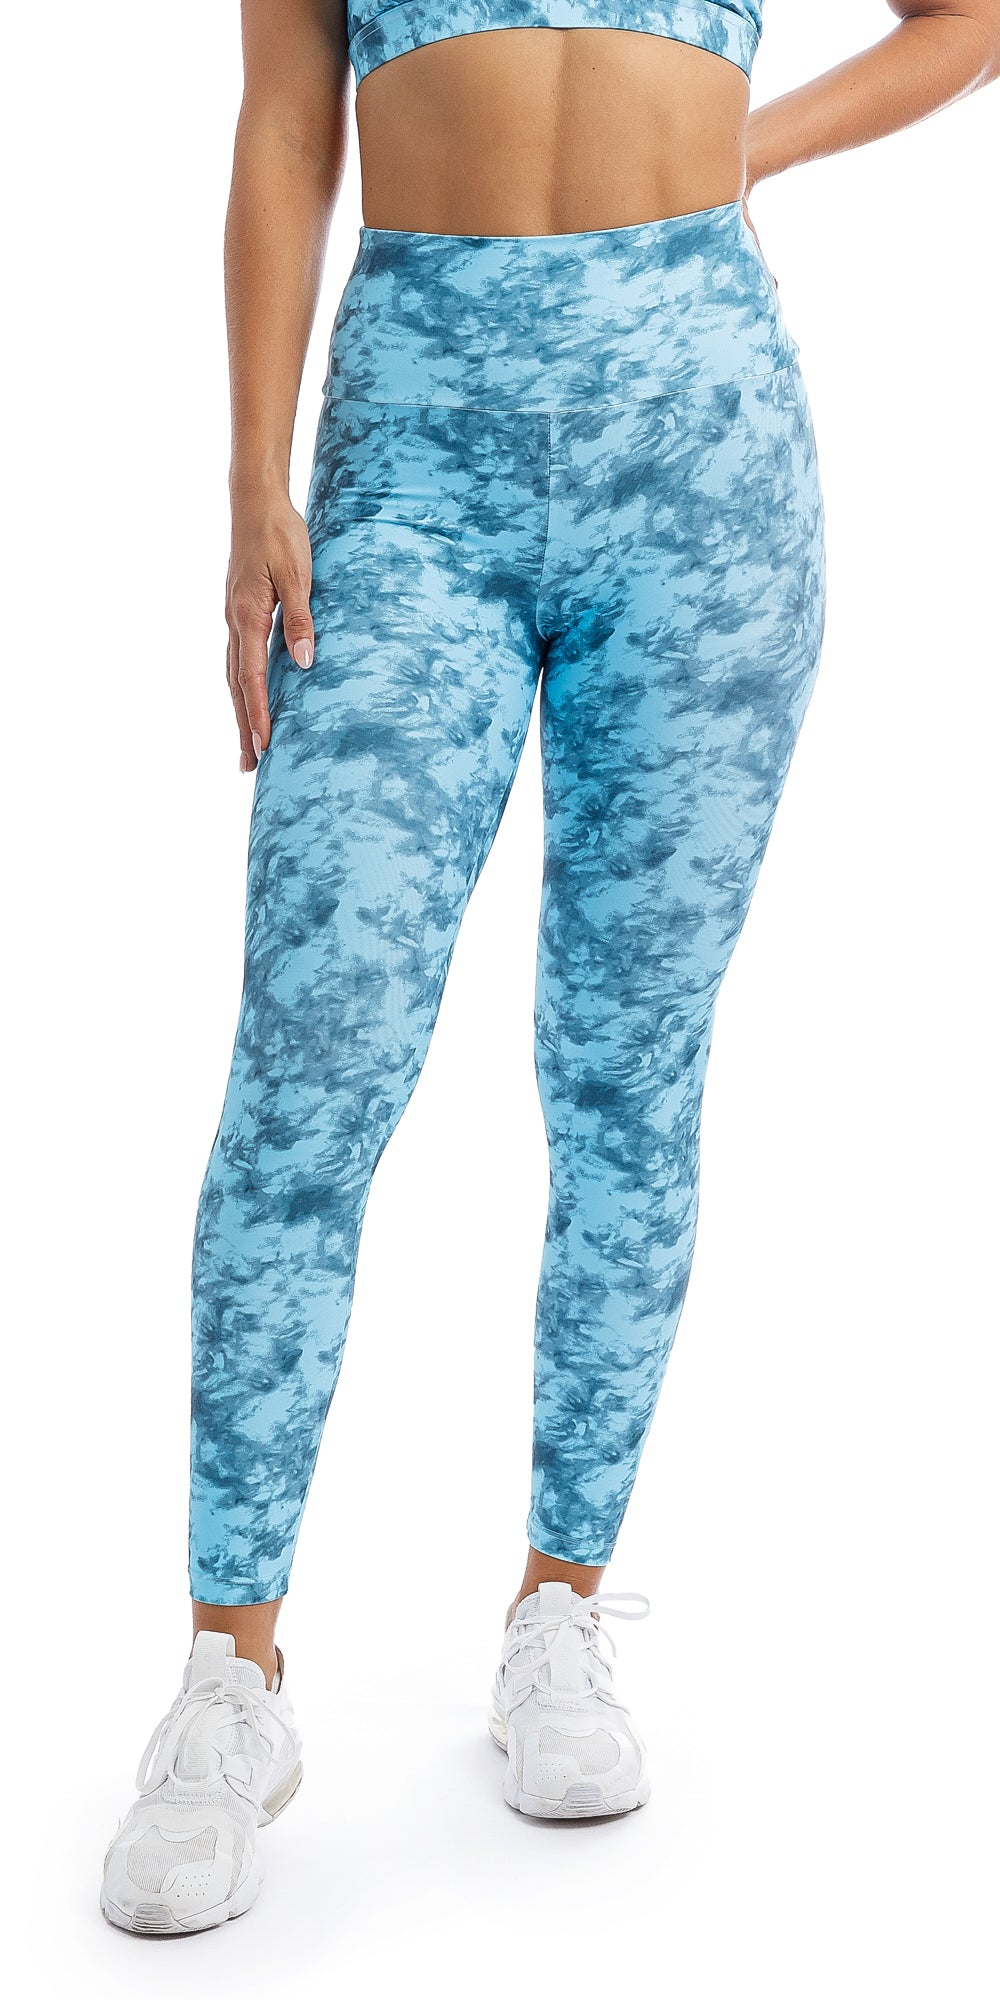 Front view of girl wearing blue tie dye blue crush print ultra high waist leggings & matching racer bra